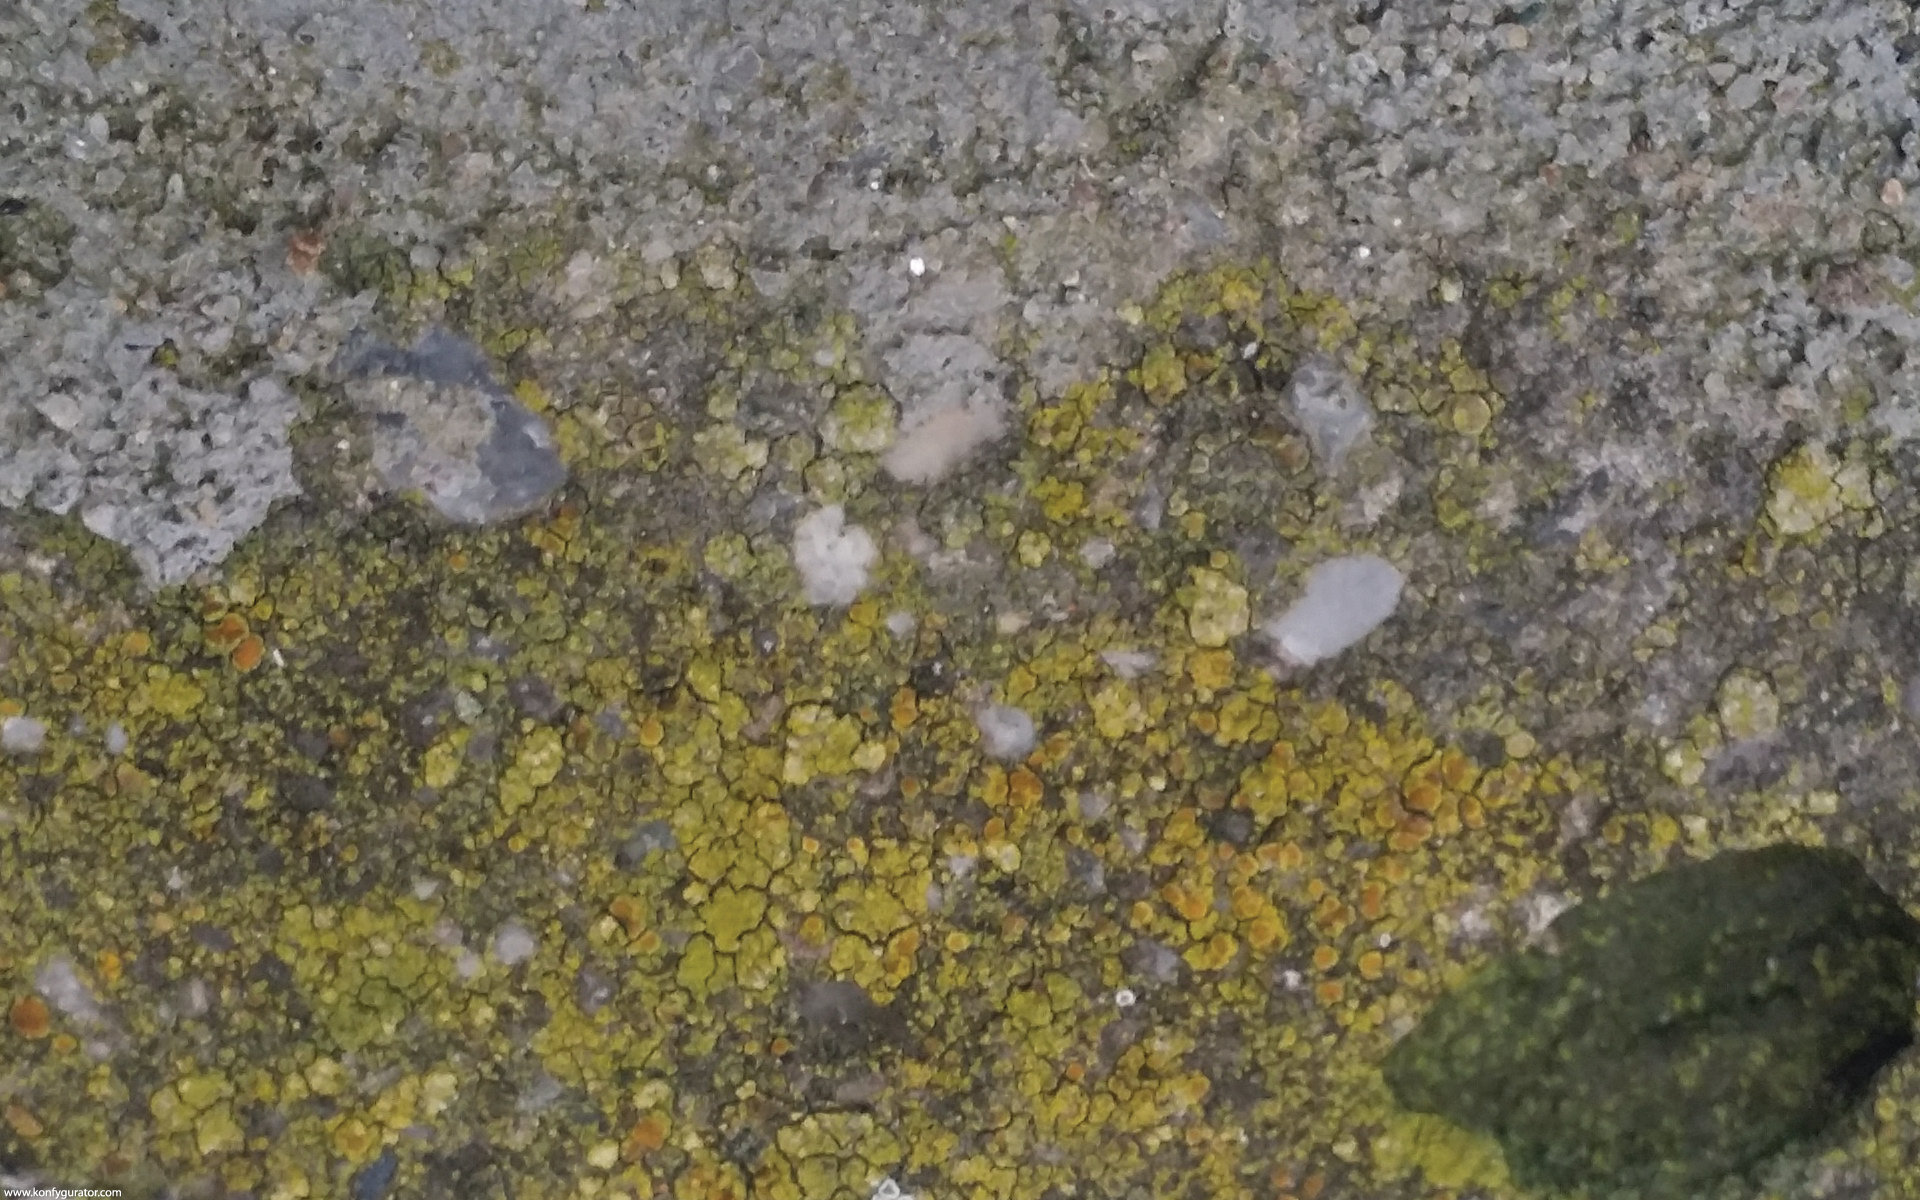 HD Wallpapers - Textures - concrete, gray, yellow